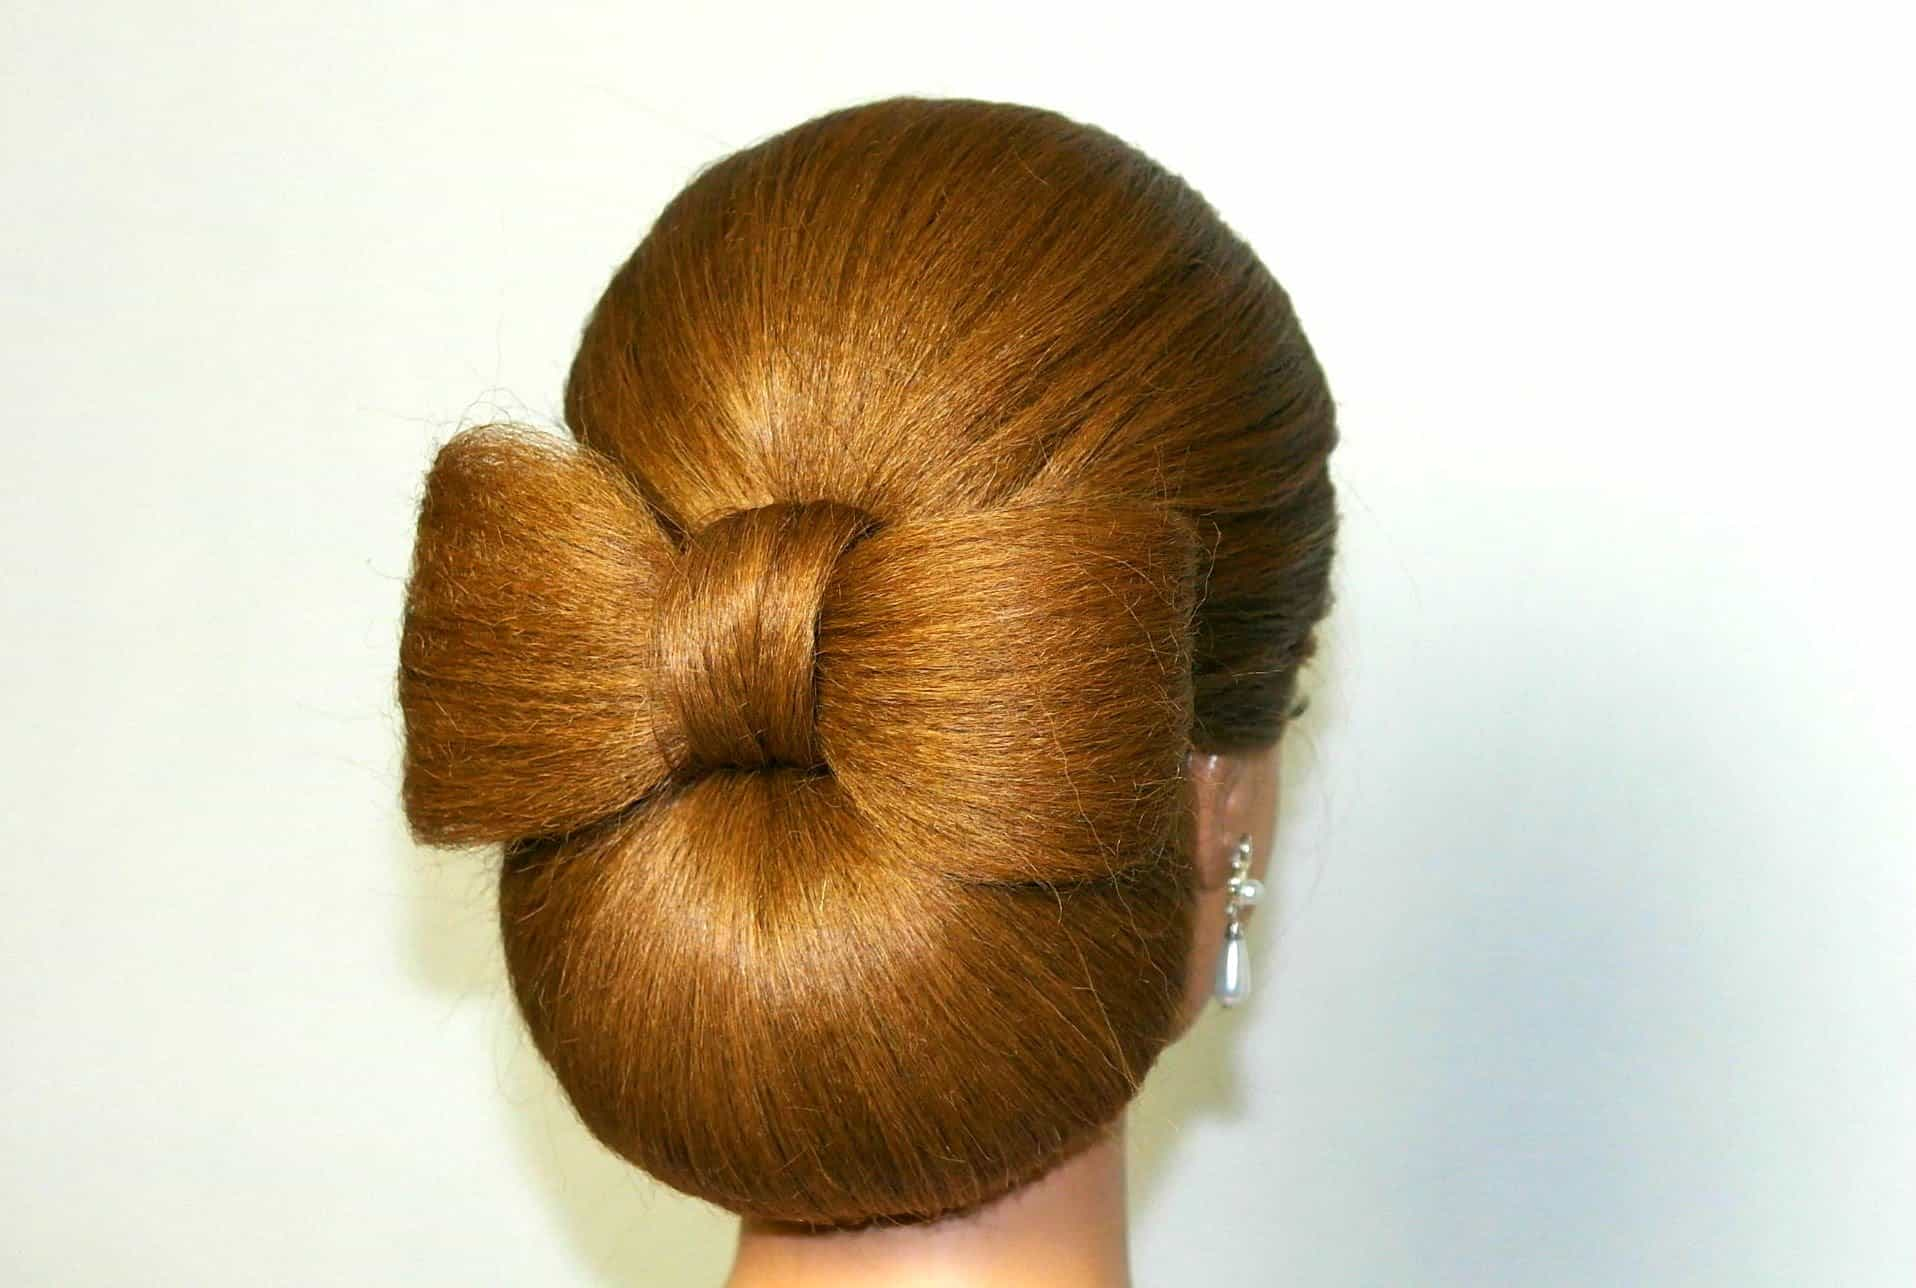 13 Great Hair Bow Pictures That Will Inspire Your Own